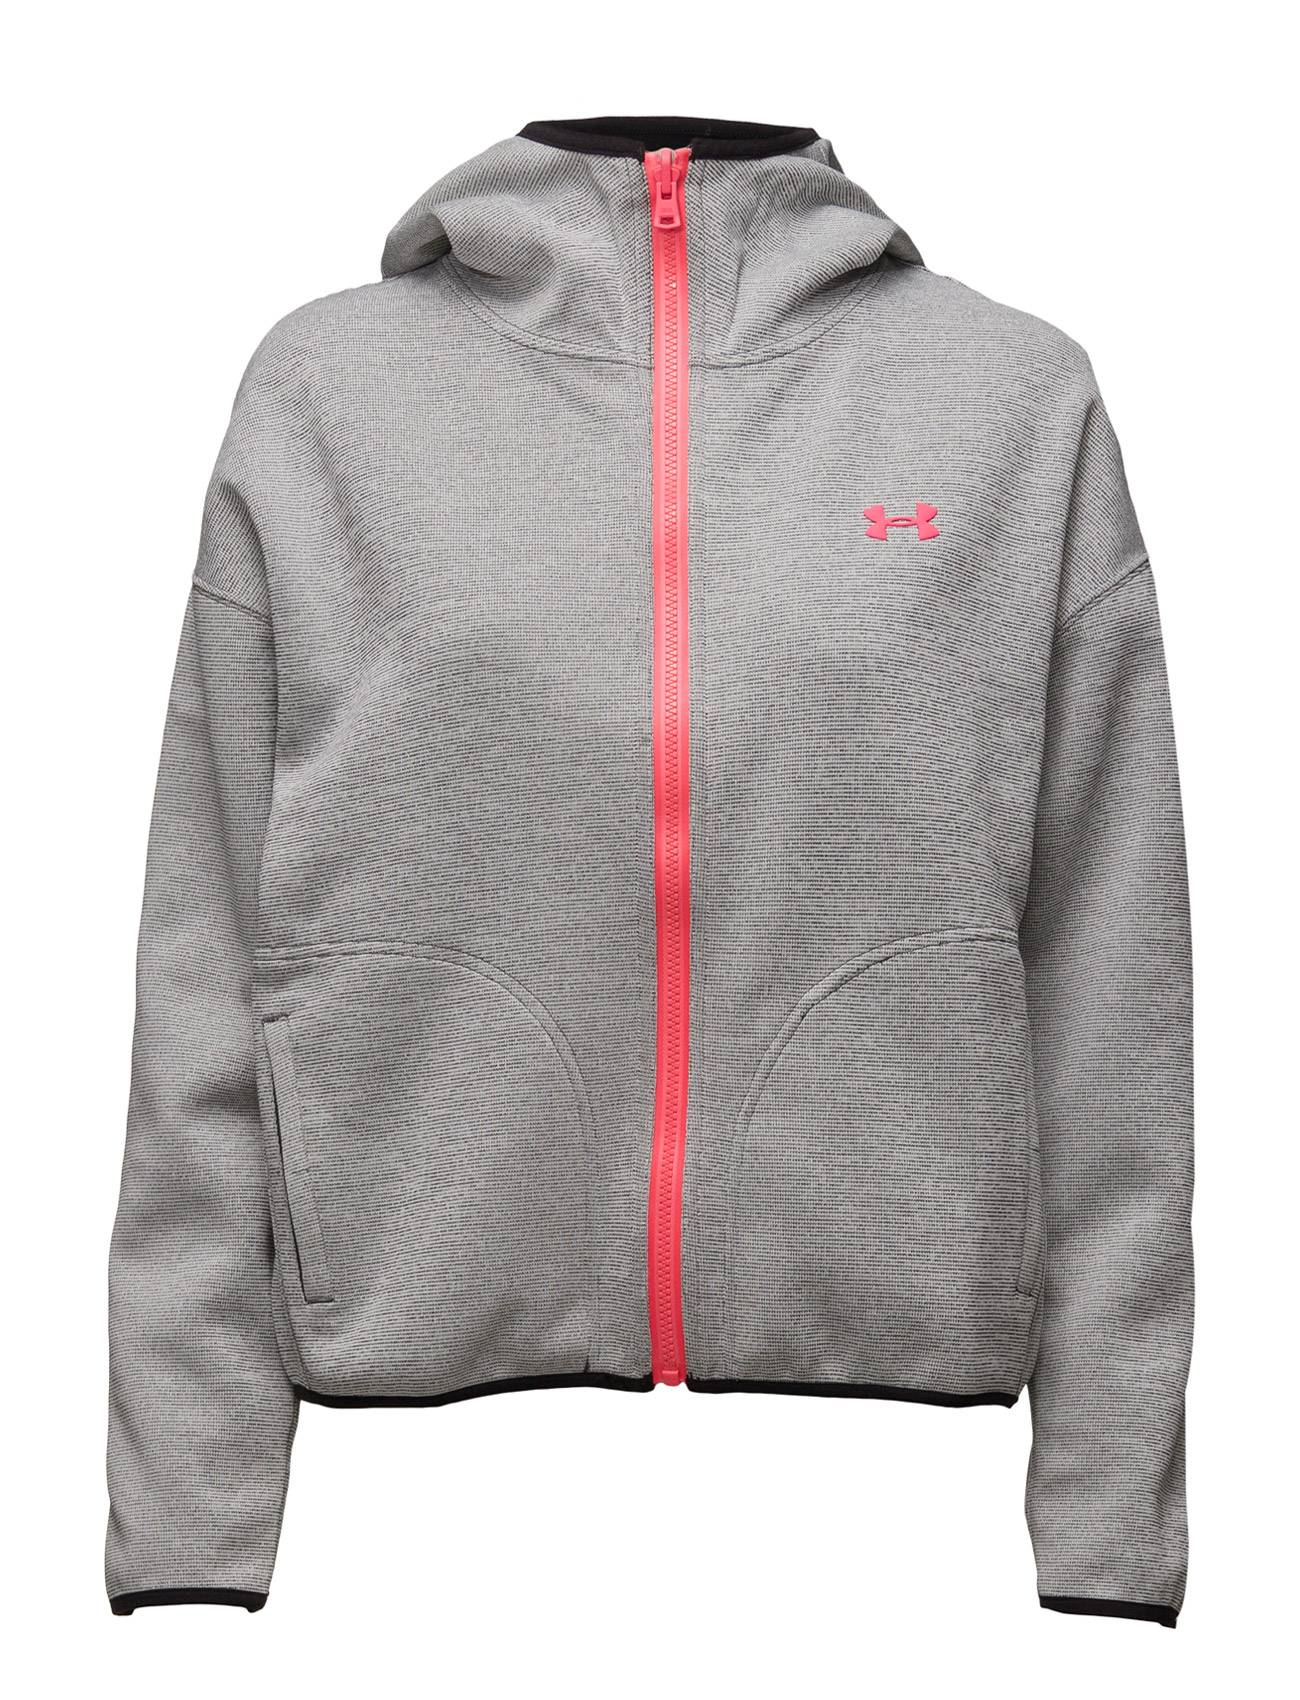 Under Armour Double Threat Swacket